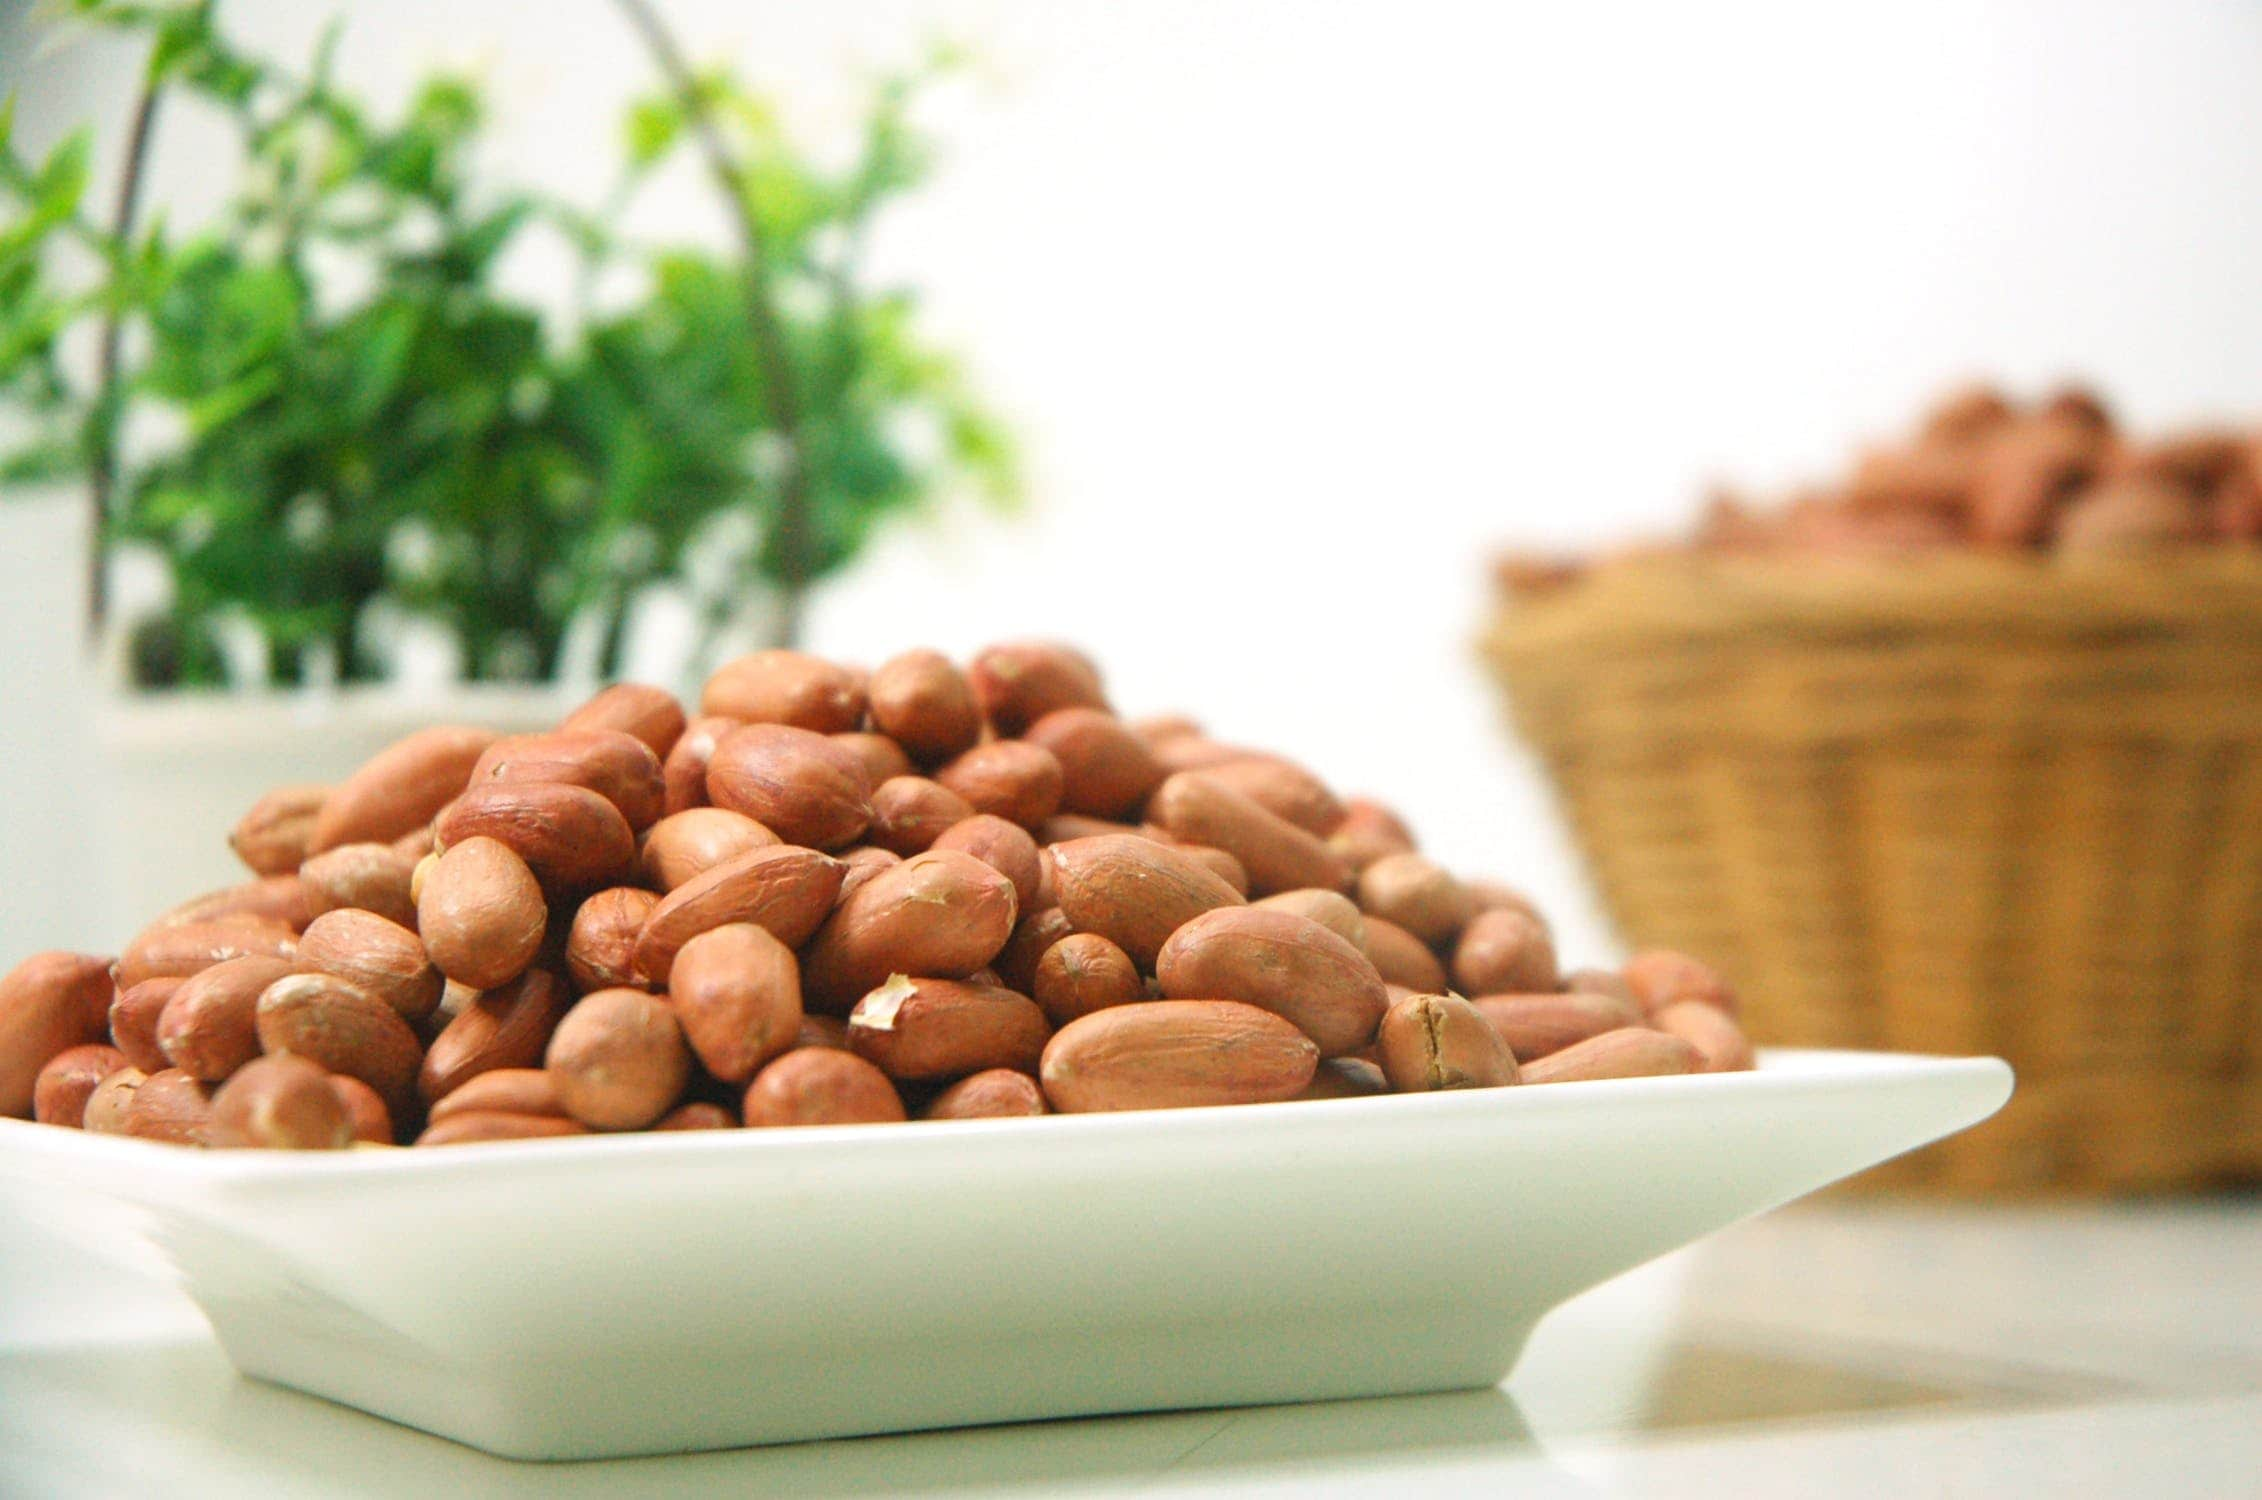 Peanut - 6 Tips to Eat Complete Proteins on a Vegan Diet